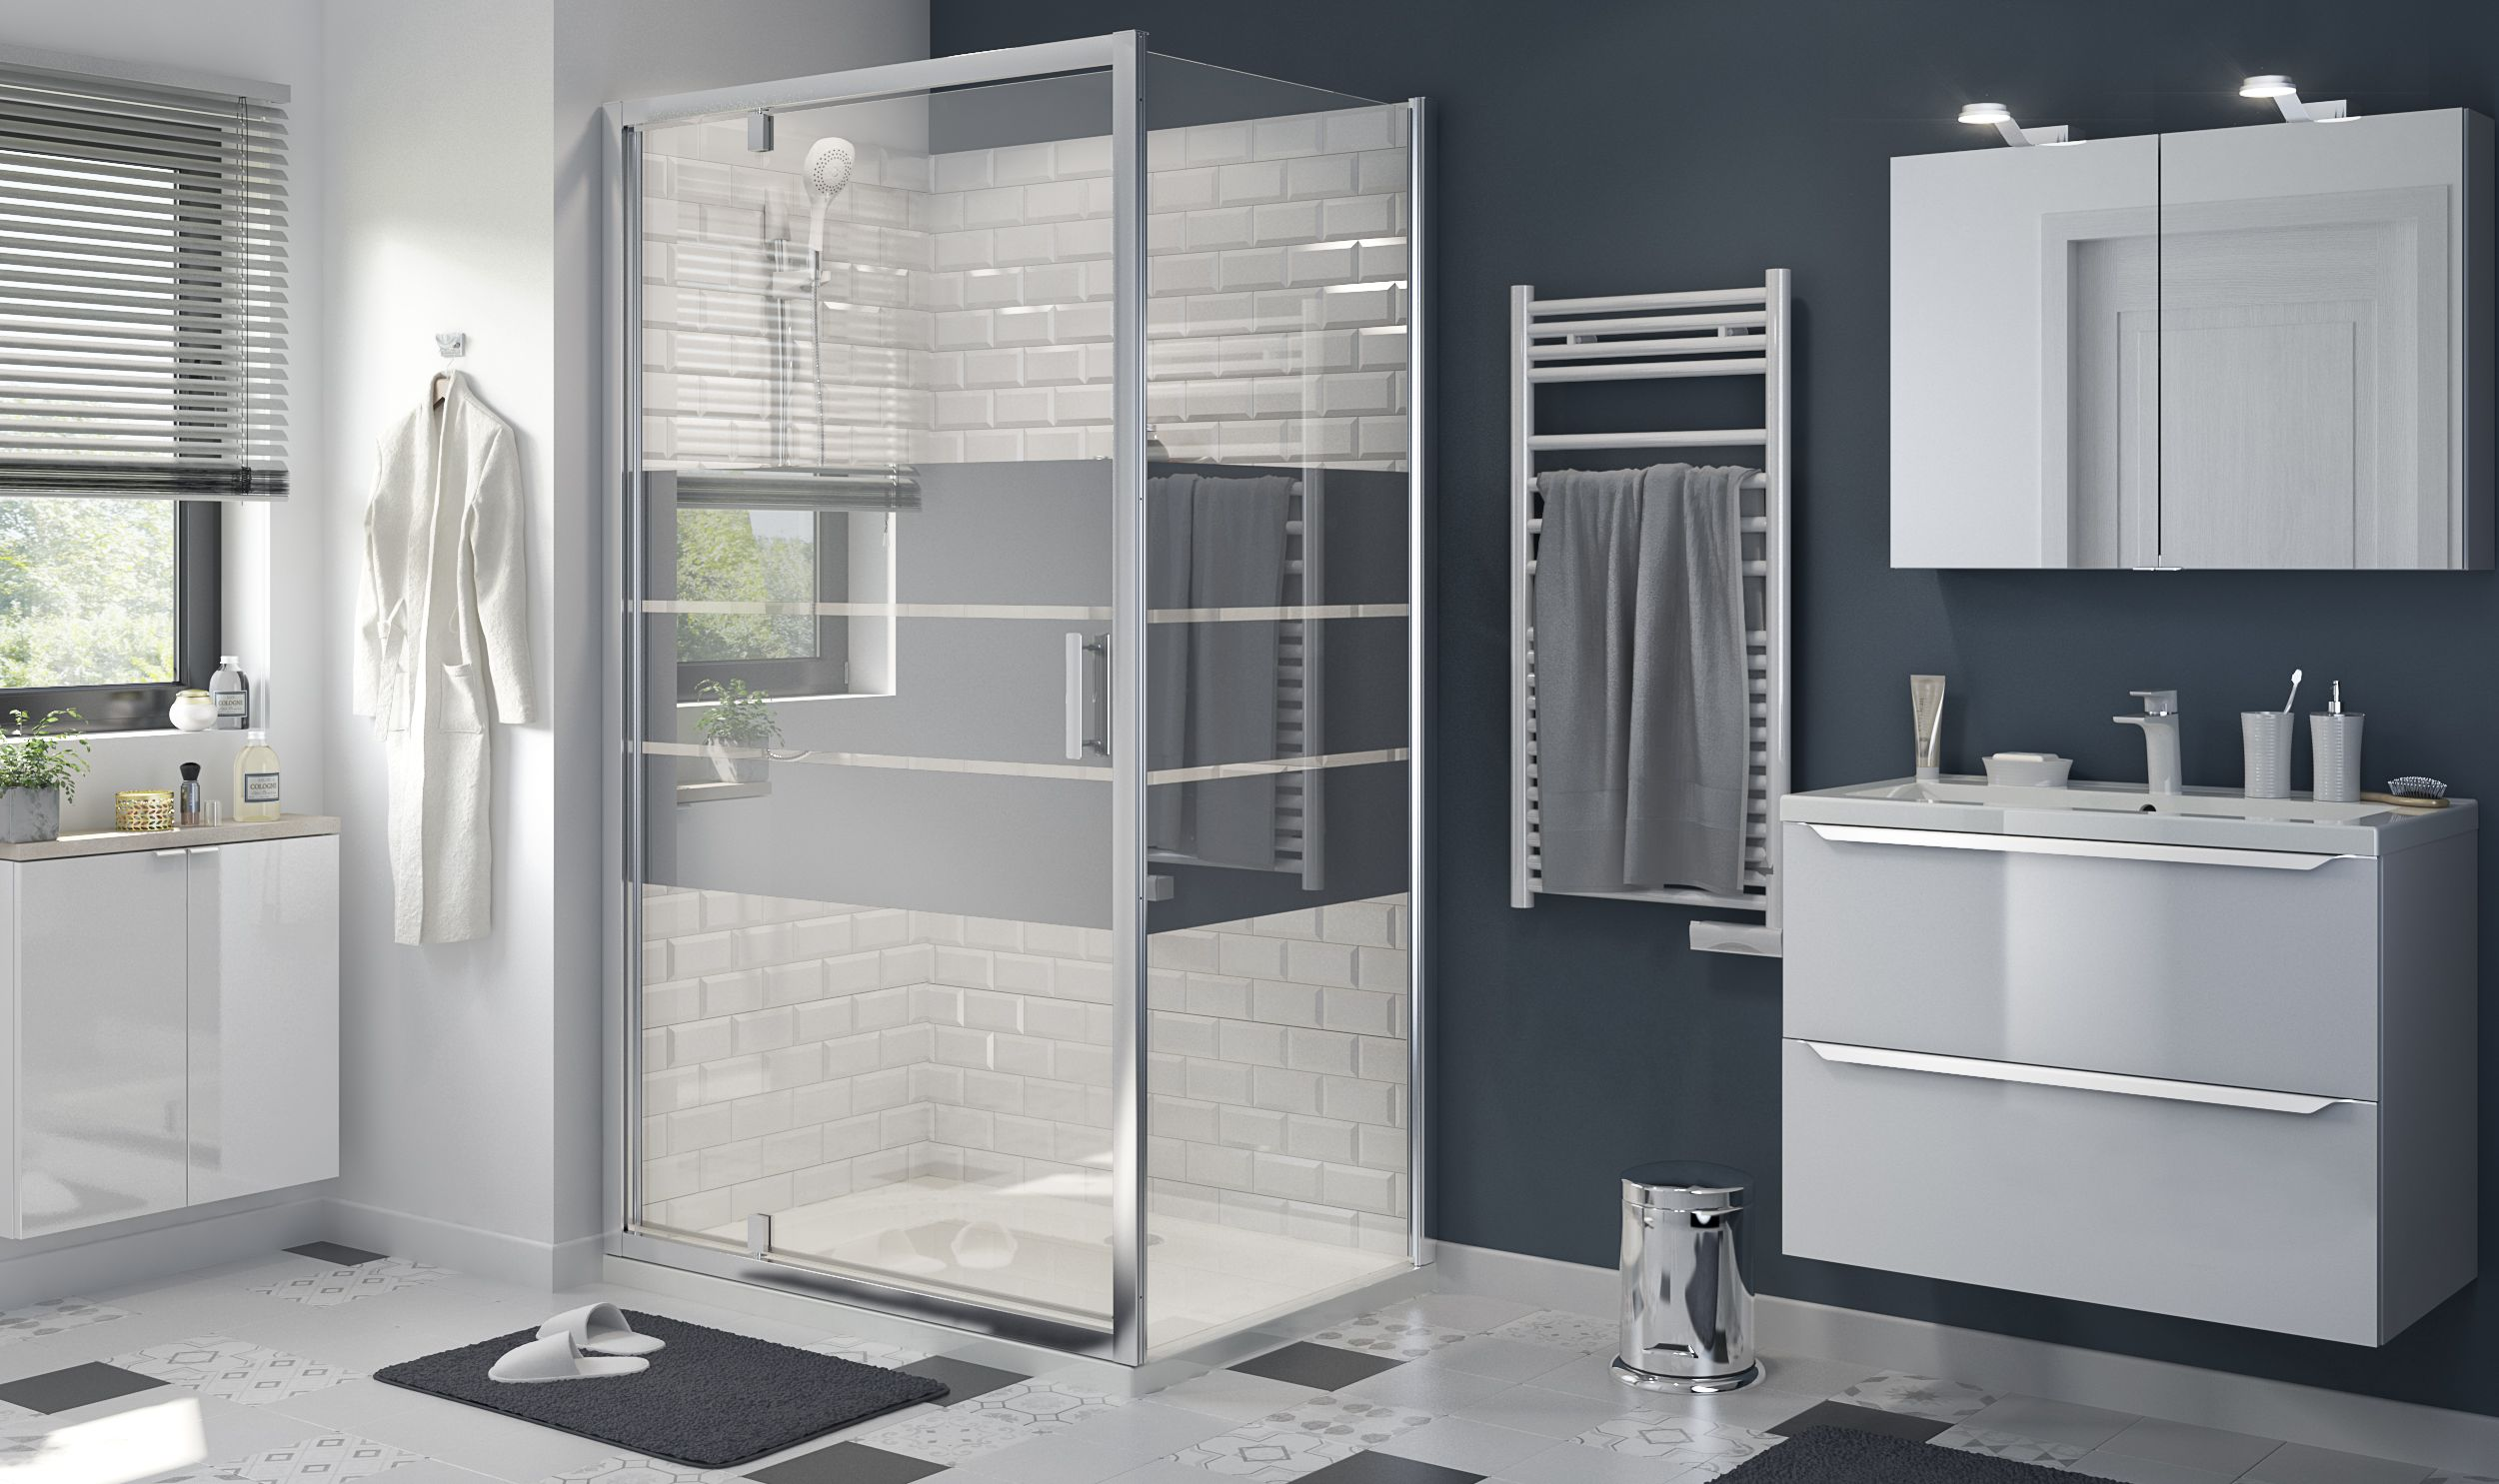 Shower Enclosure Amp Tray Buying Guide Ideas Amp Advice